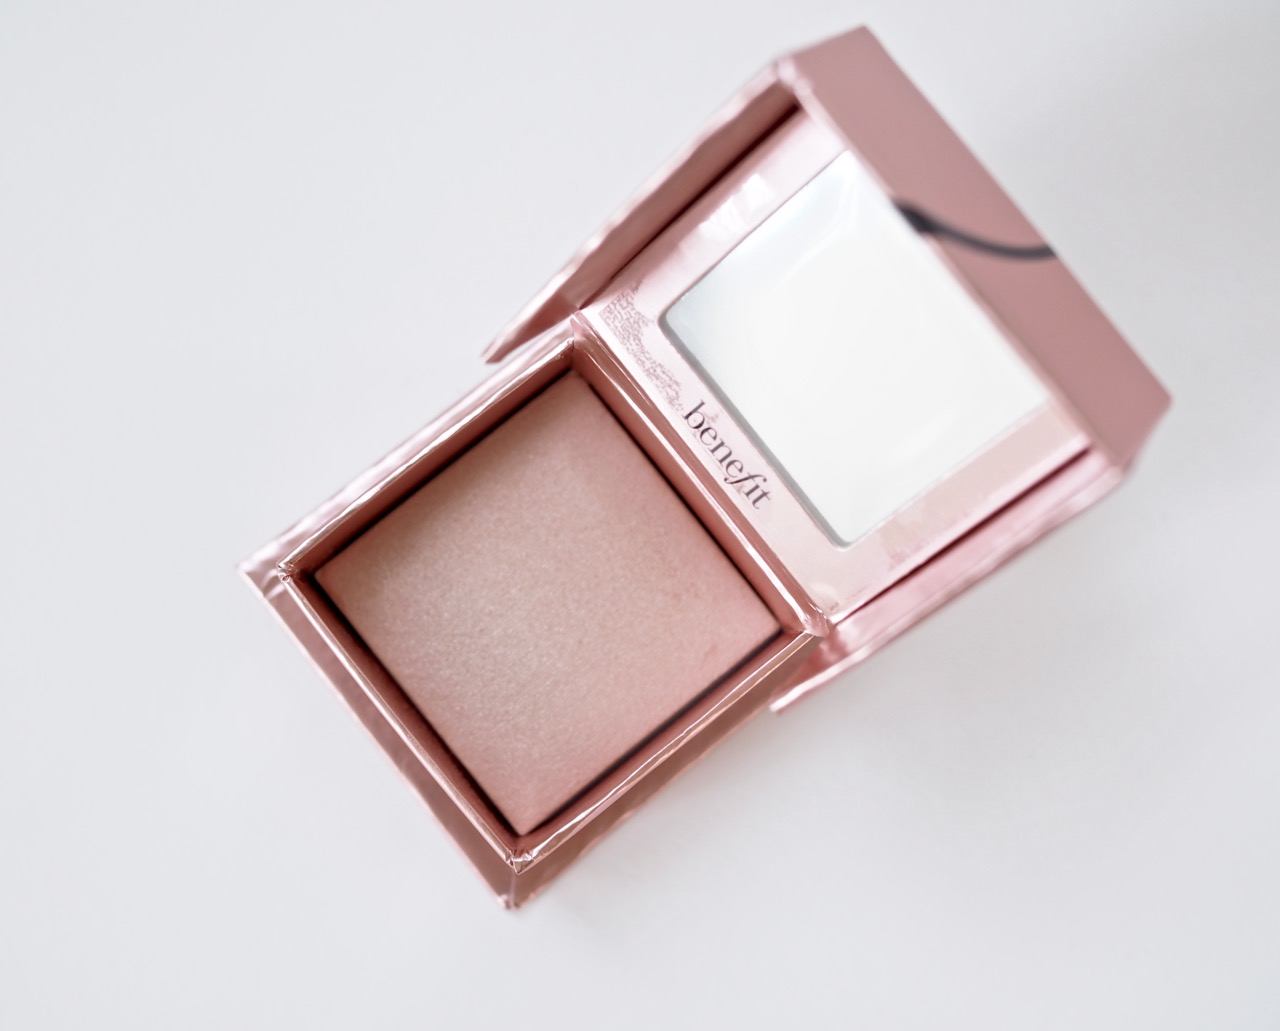 Benefit Dandelion Twinkle highlighter - 1 (9)